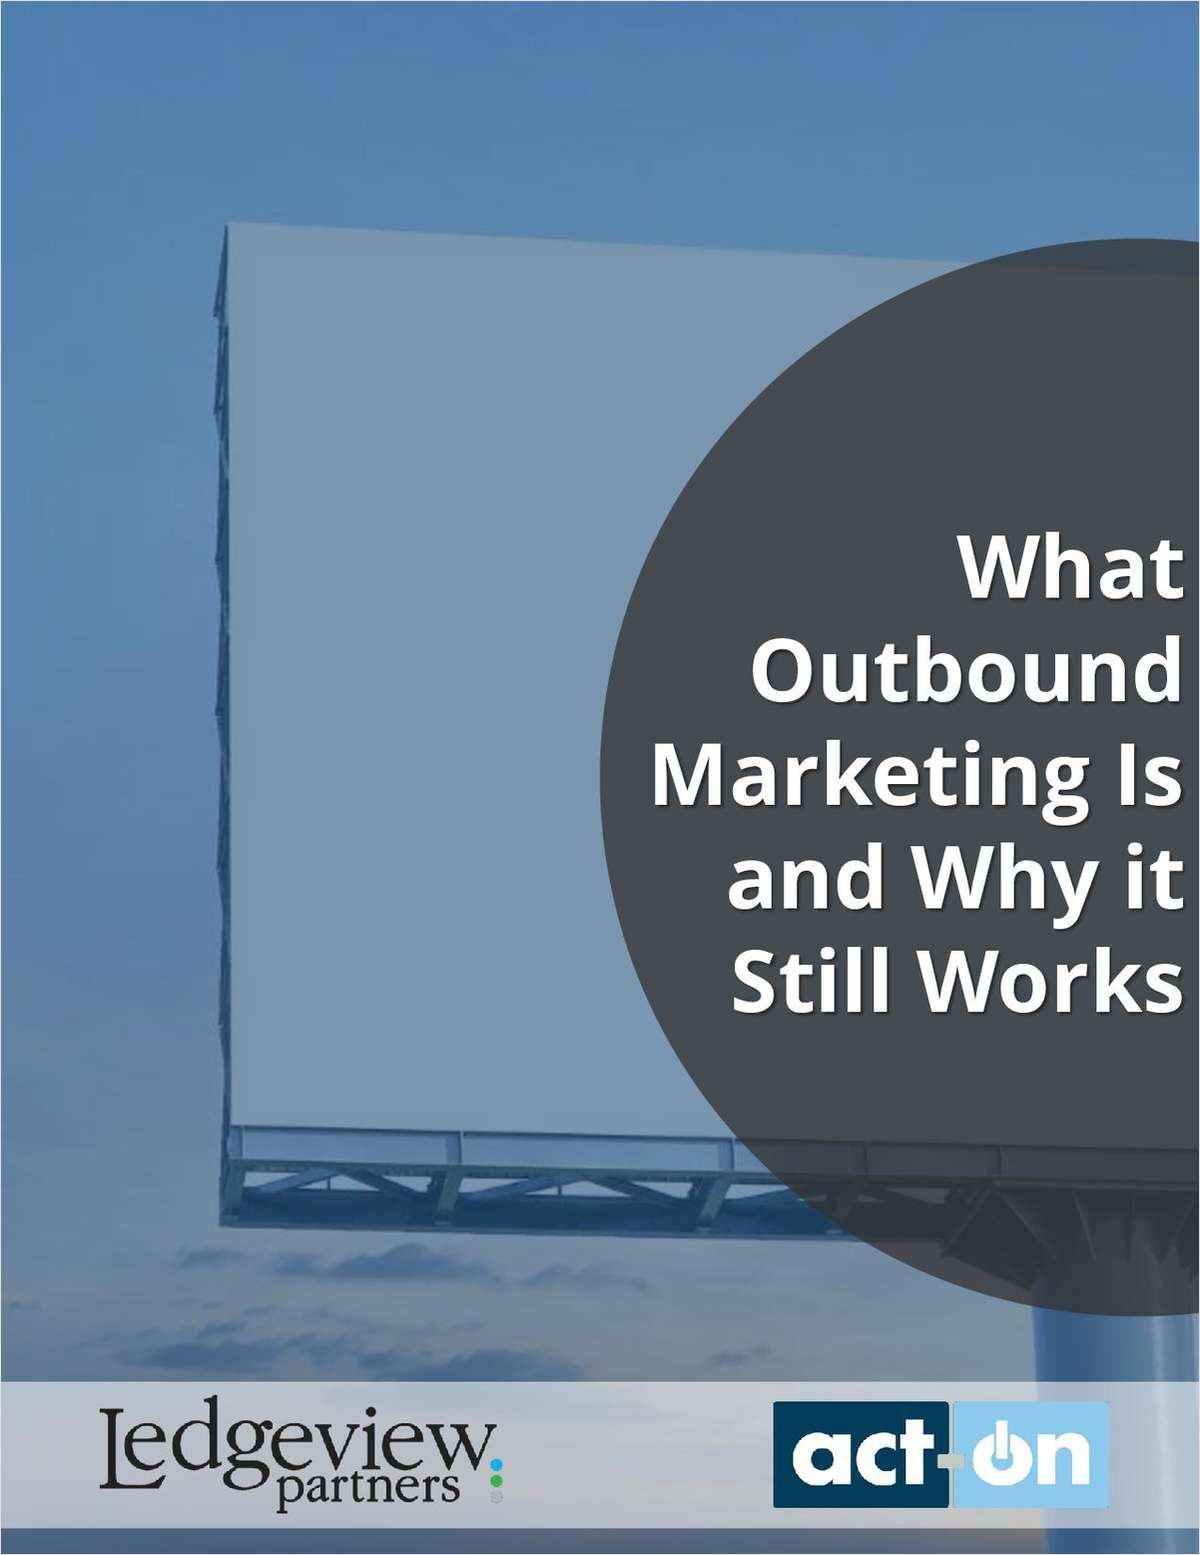 What Outbound Marketing Is and Why It Still Works